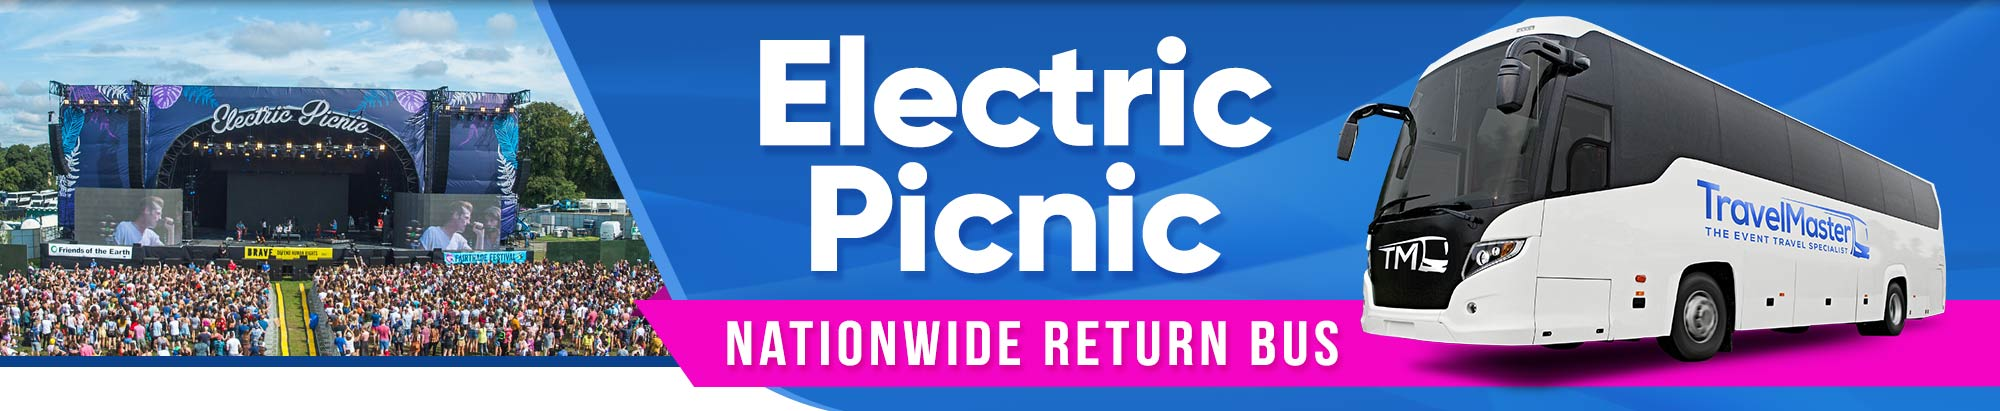 Bus to Electric Picnic 2020 - Nationwide Return Service to EP